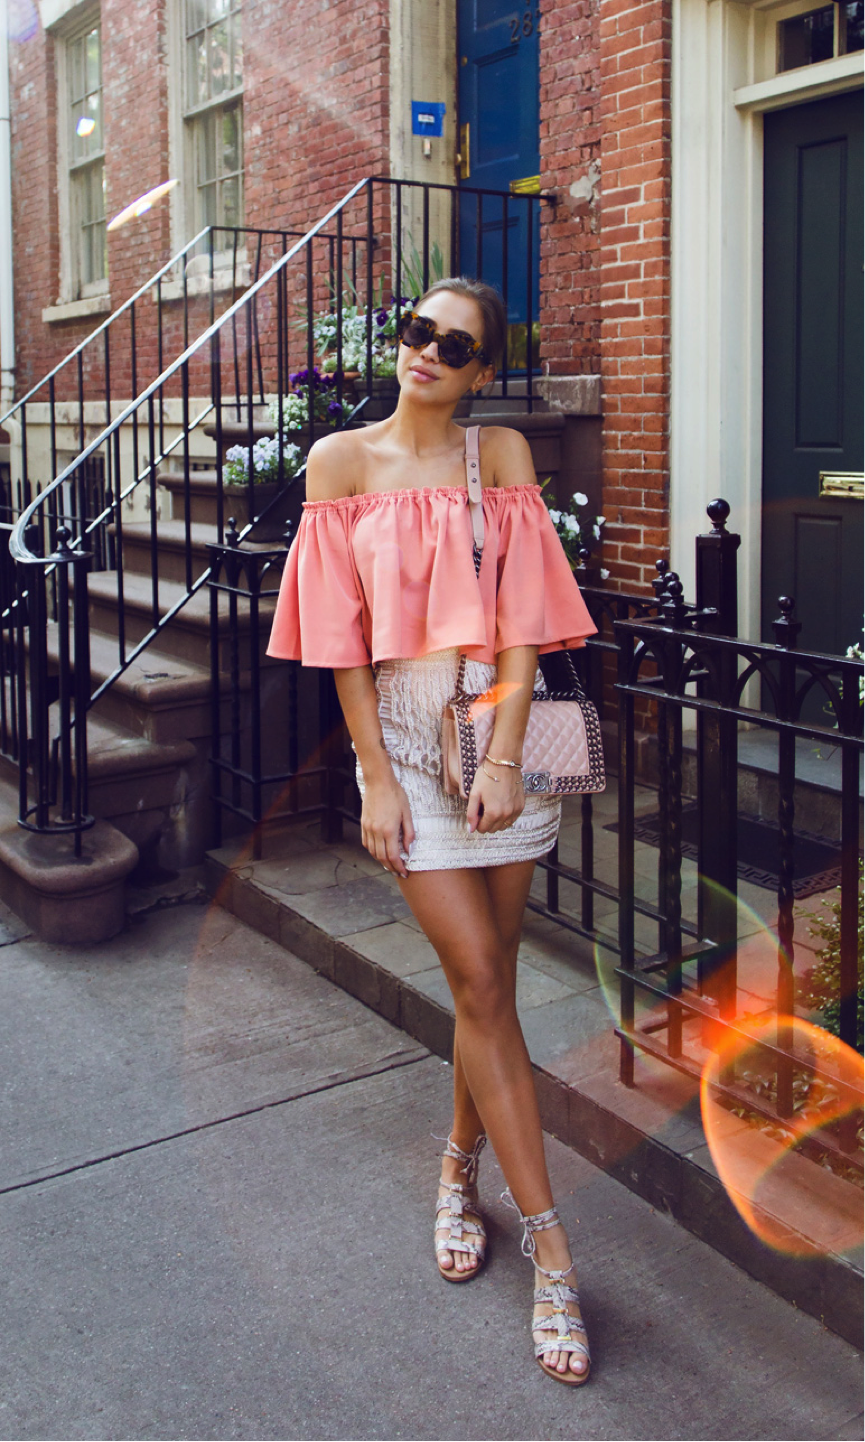 This is the ultimate summer outfit! Kenza Zouiten looks pretty-in-pink in this off-the-shoulder tee and mini skirt combo. We love the pairing of the different shades of pink, which make for an adorable feminine look. Top: Revolve, Skirt: Ginatricot, Sandals: Steve Madden